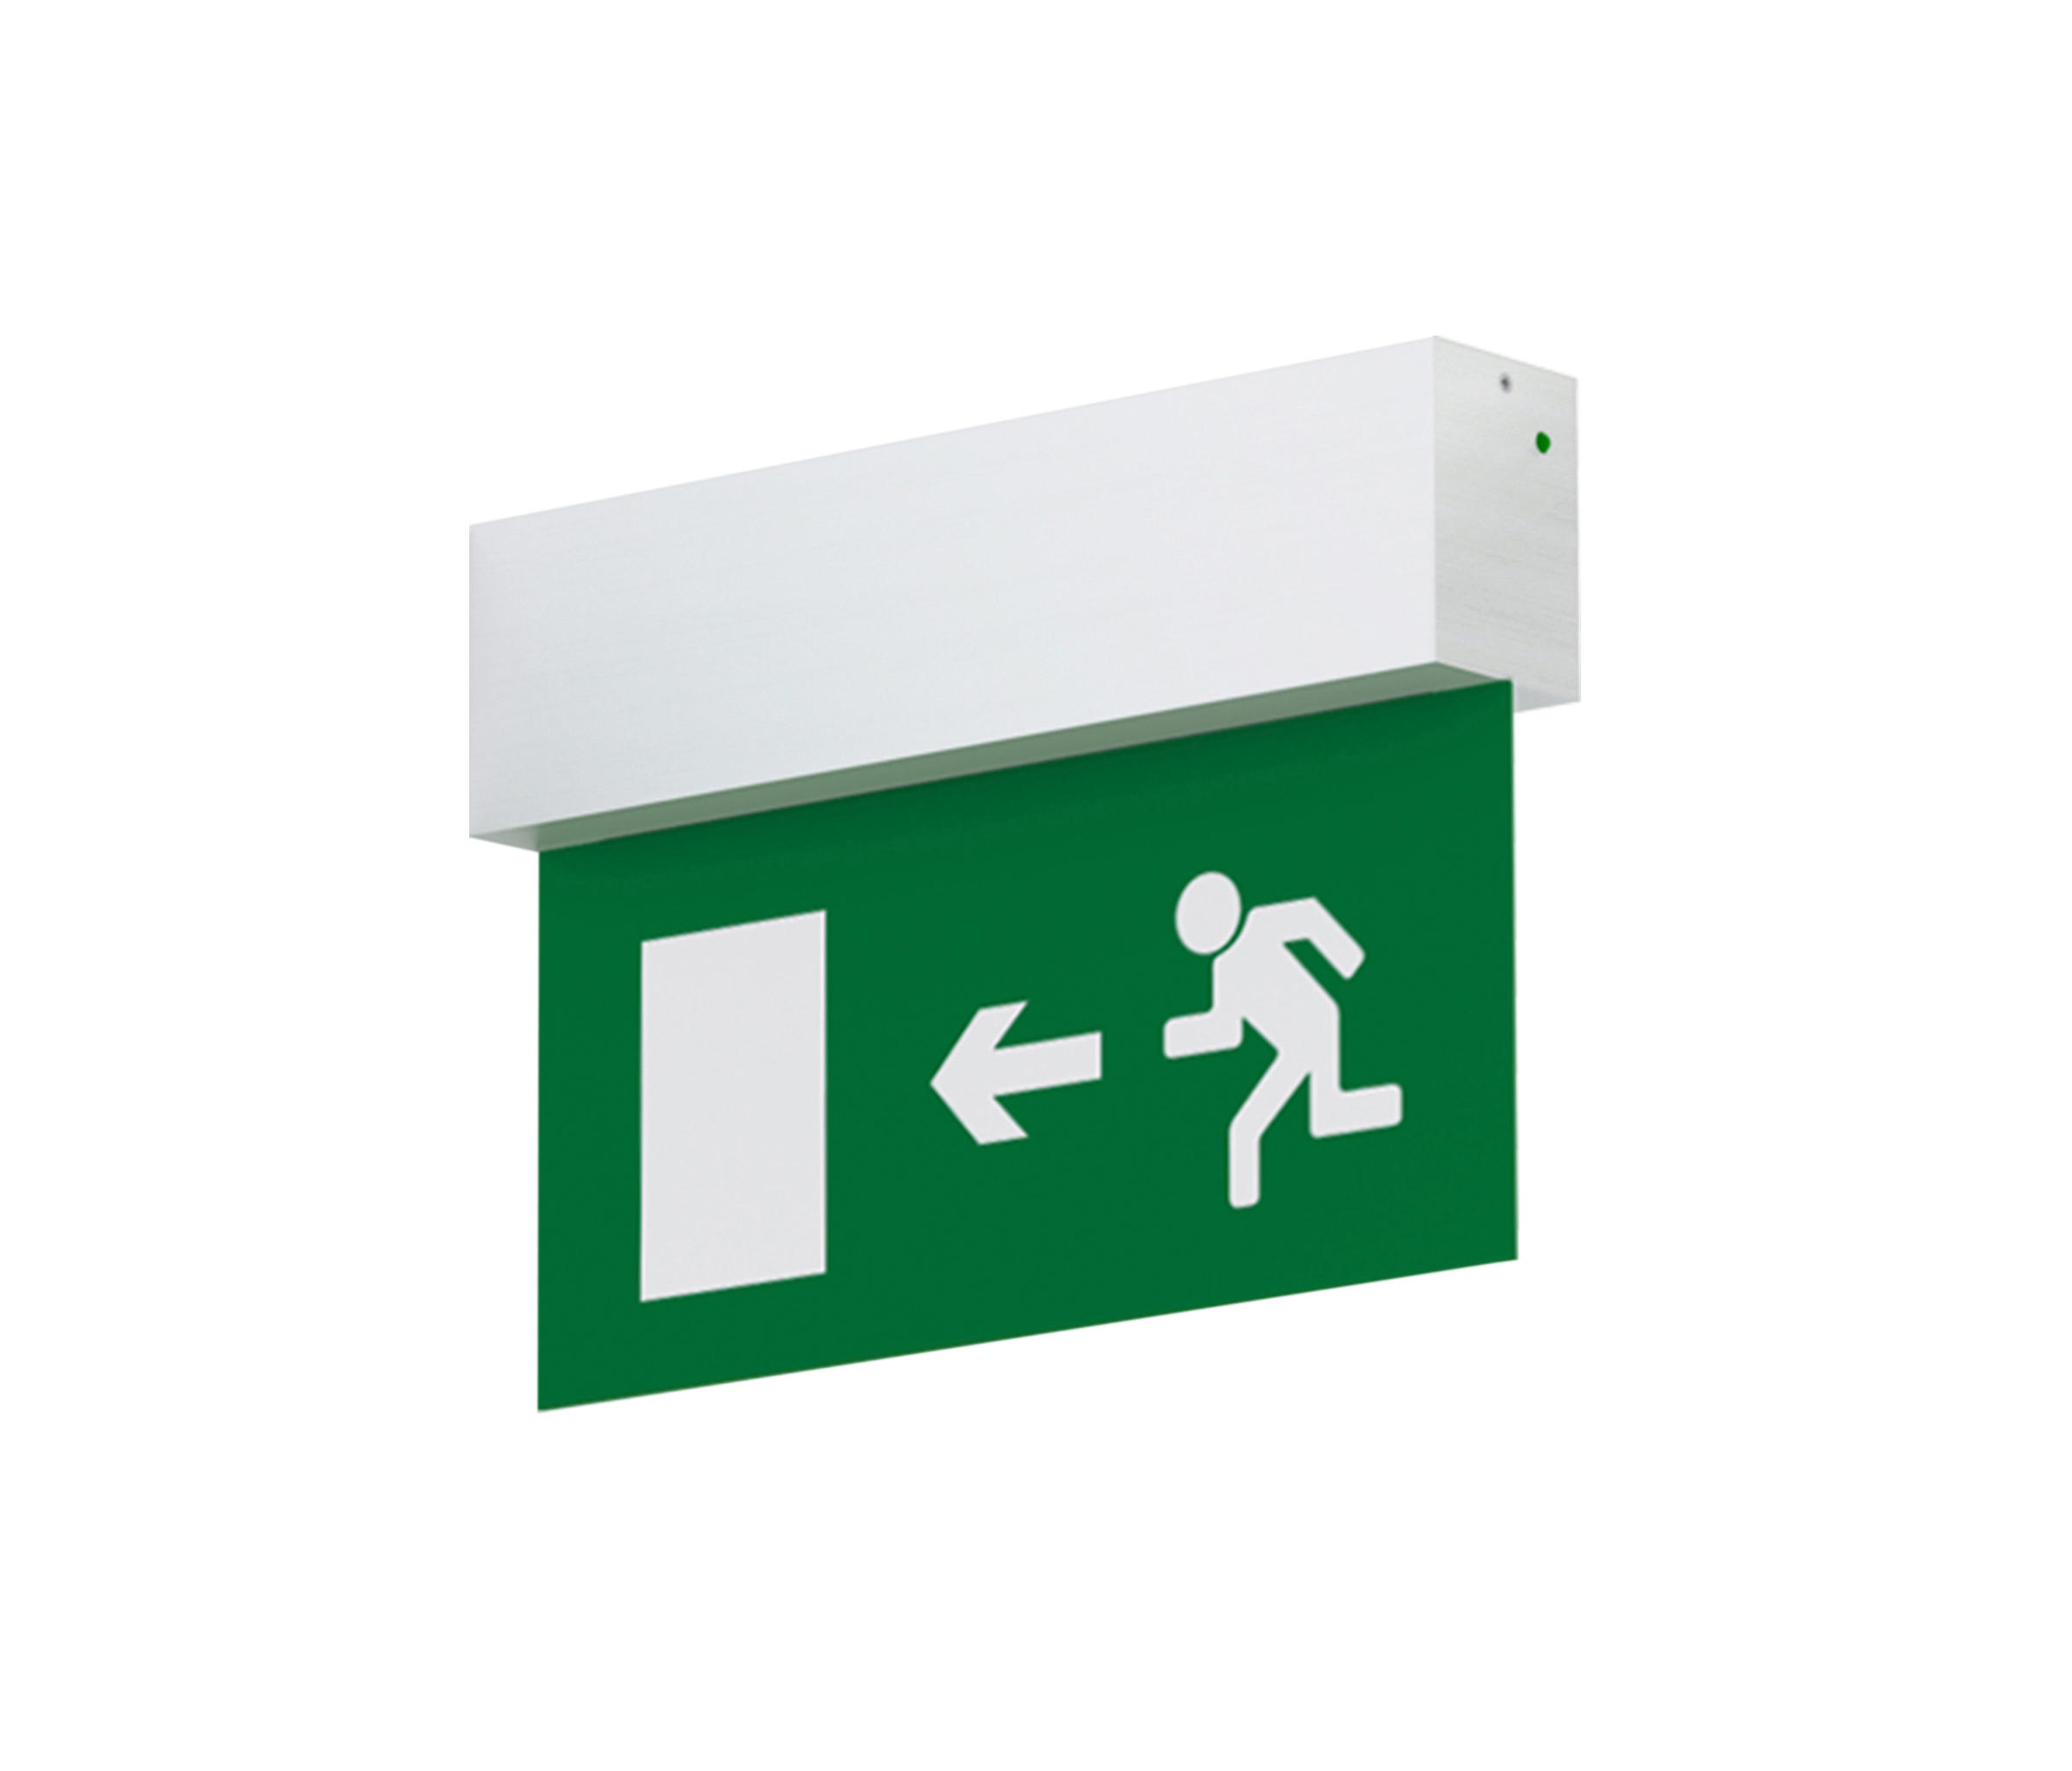 Wall Hanging Emergency Light : LS Wall end mounted - Wall-mounted emergency lights by O/M Architonic